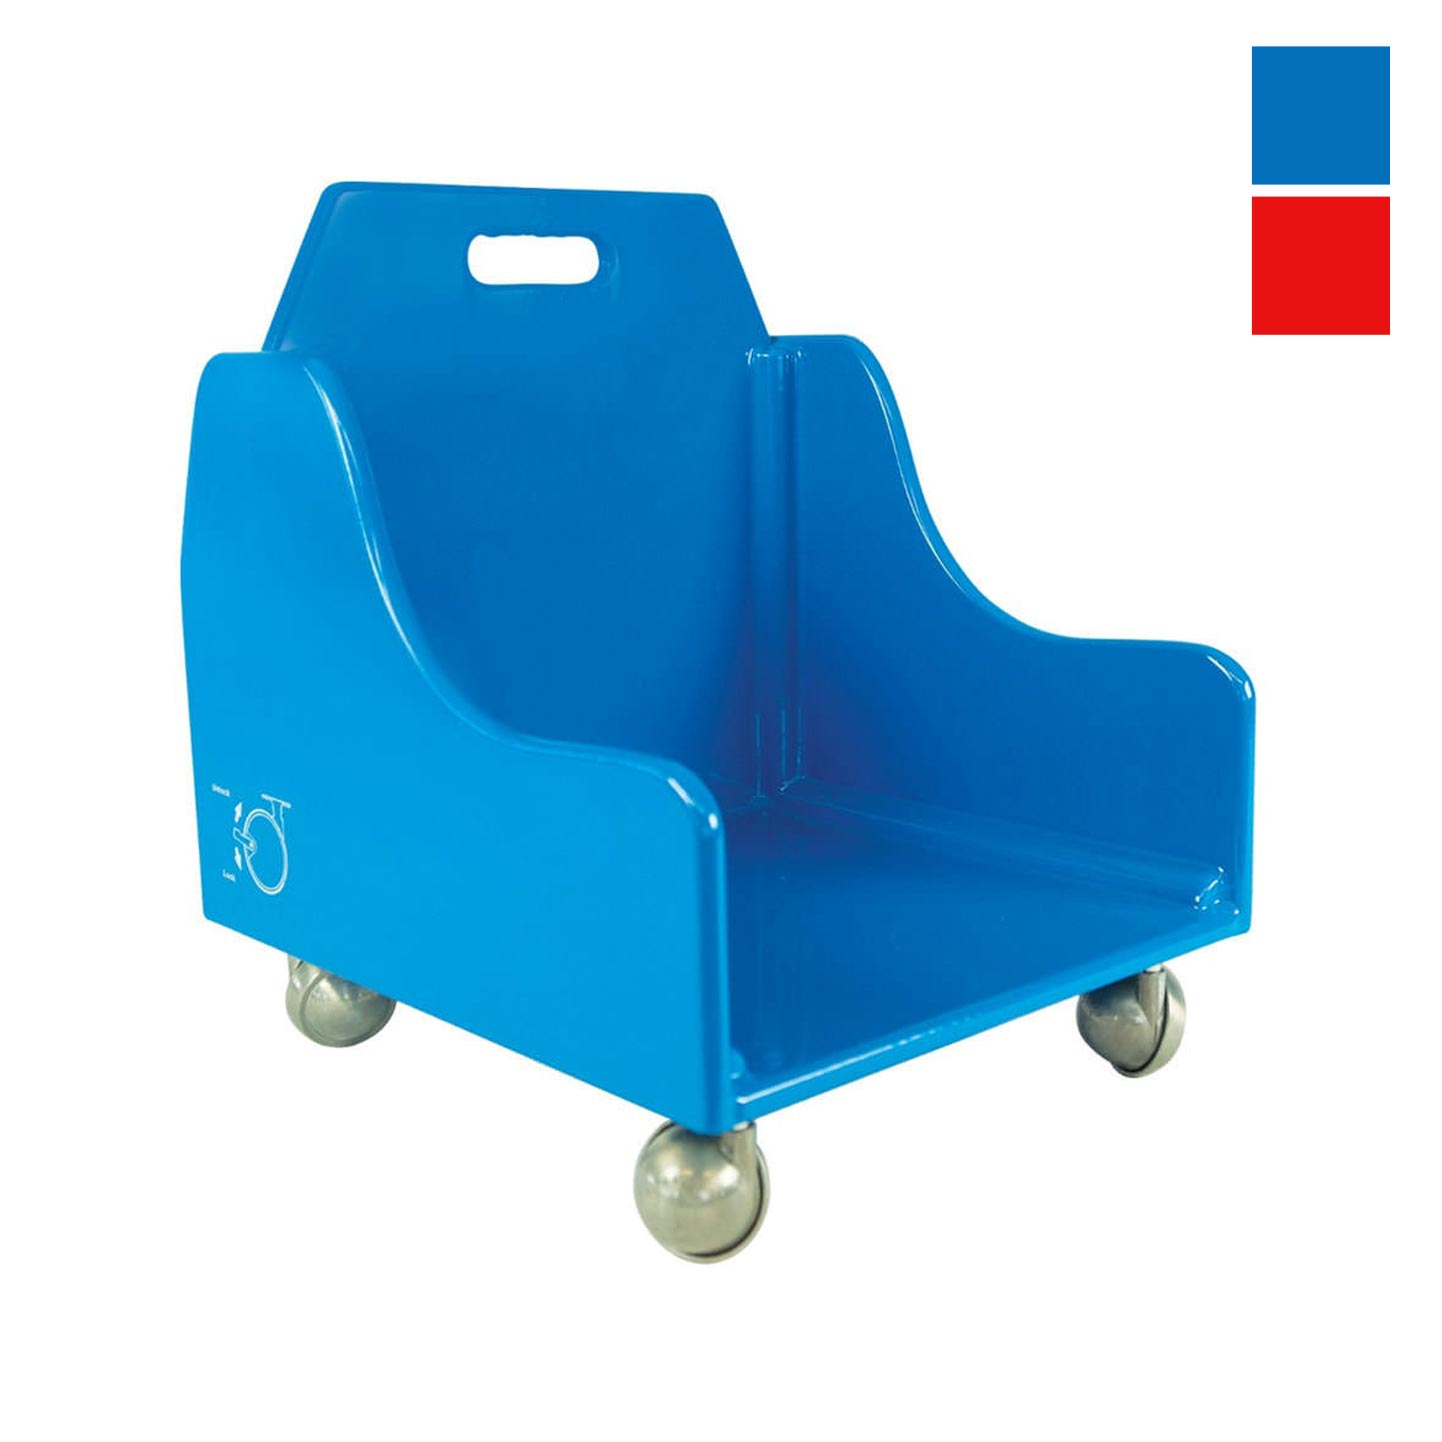 Tumble Forms Mobile Base For Feeder Seat | Performance Health